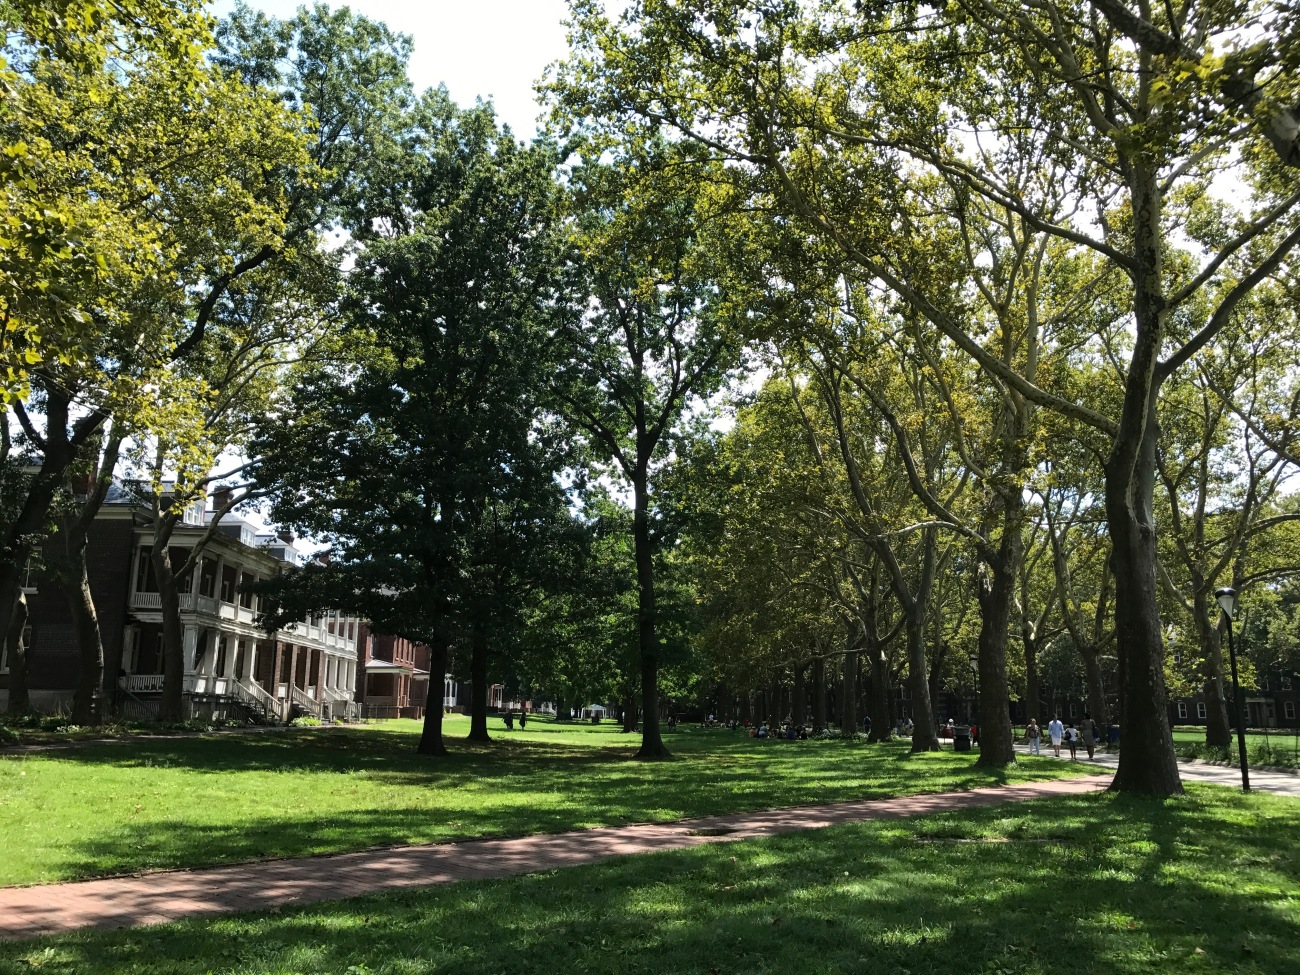 Colonels Row on Governors Island (WildmooBooks.com)